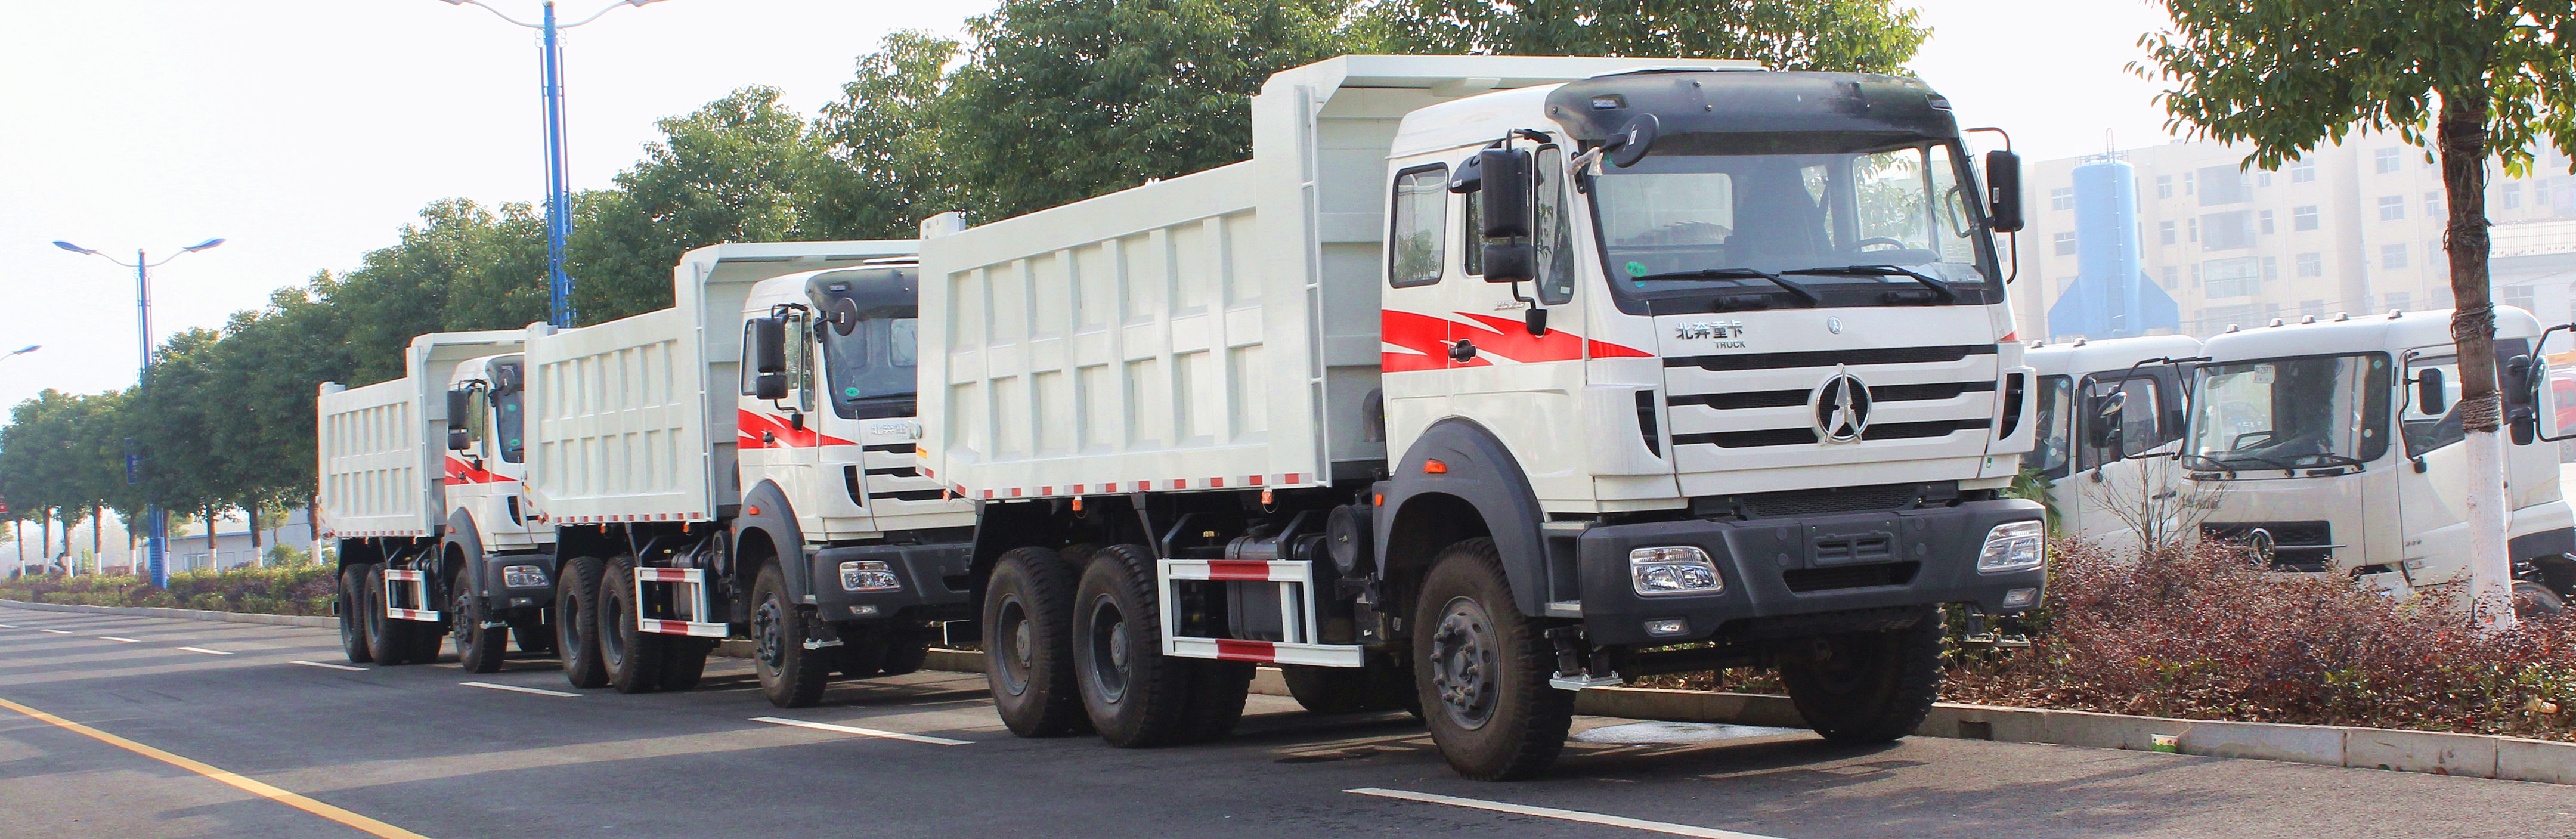 TOP beiben dumper trucks manufacturer lowest price sale